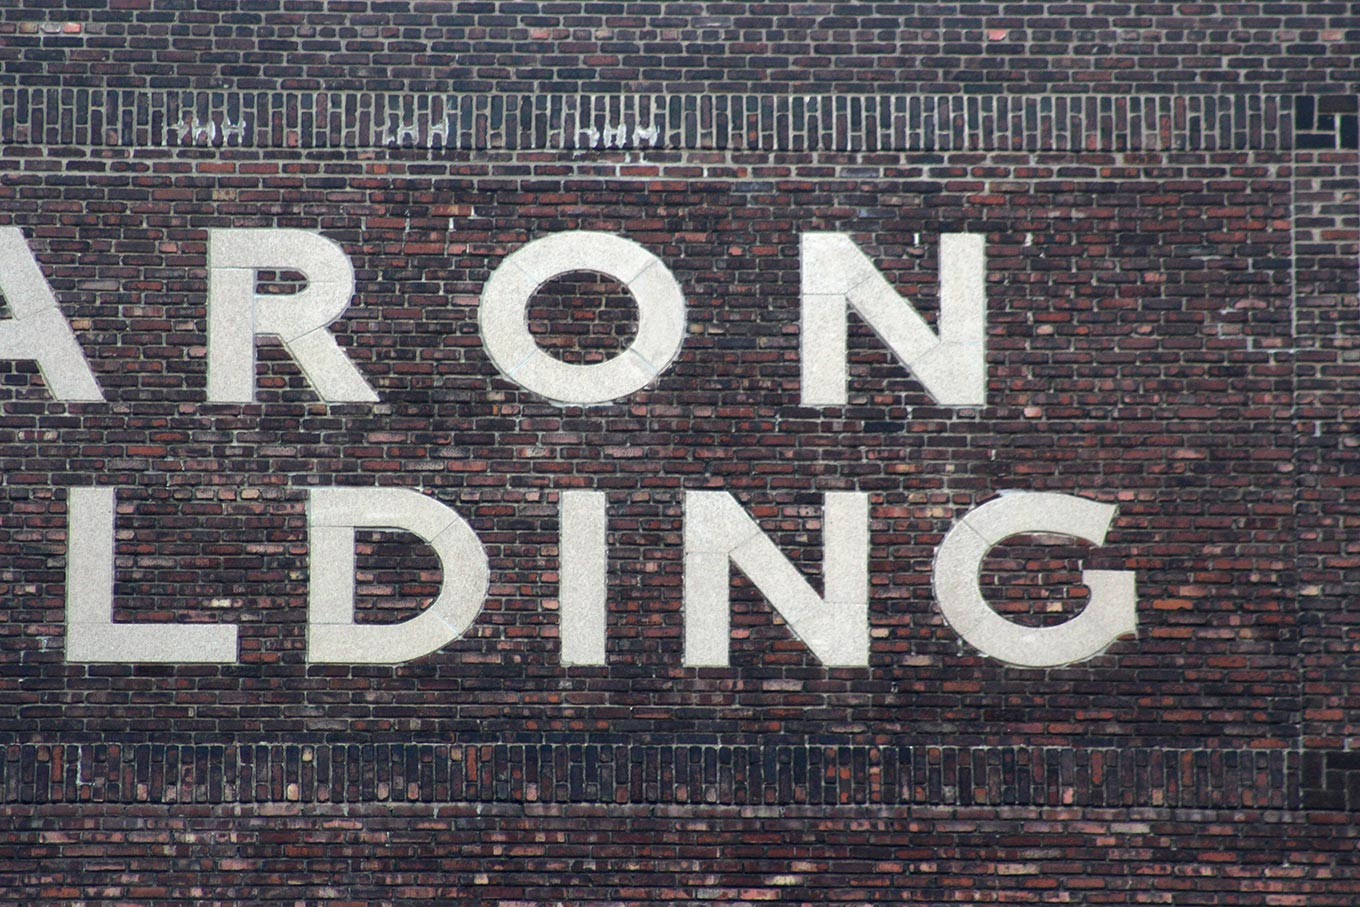 Inlaid limestone lettering on the side of the Caron Building